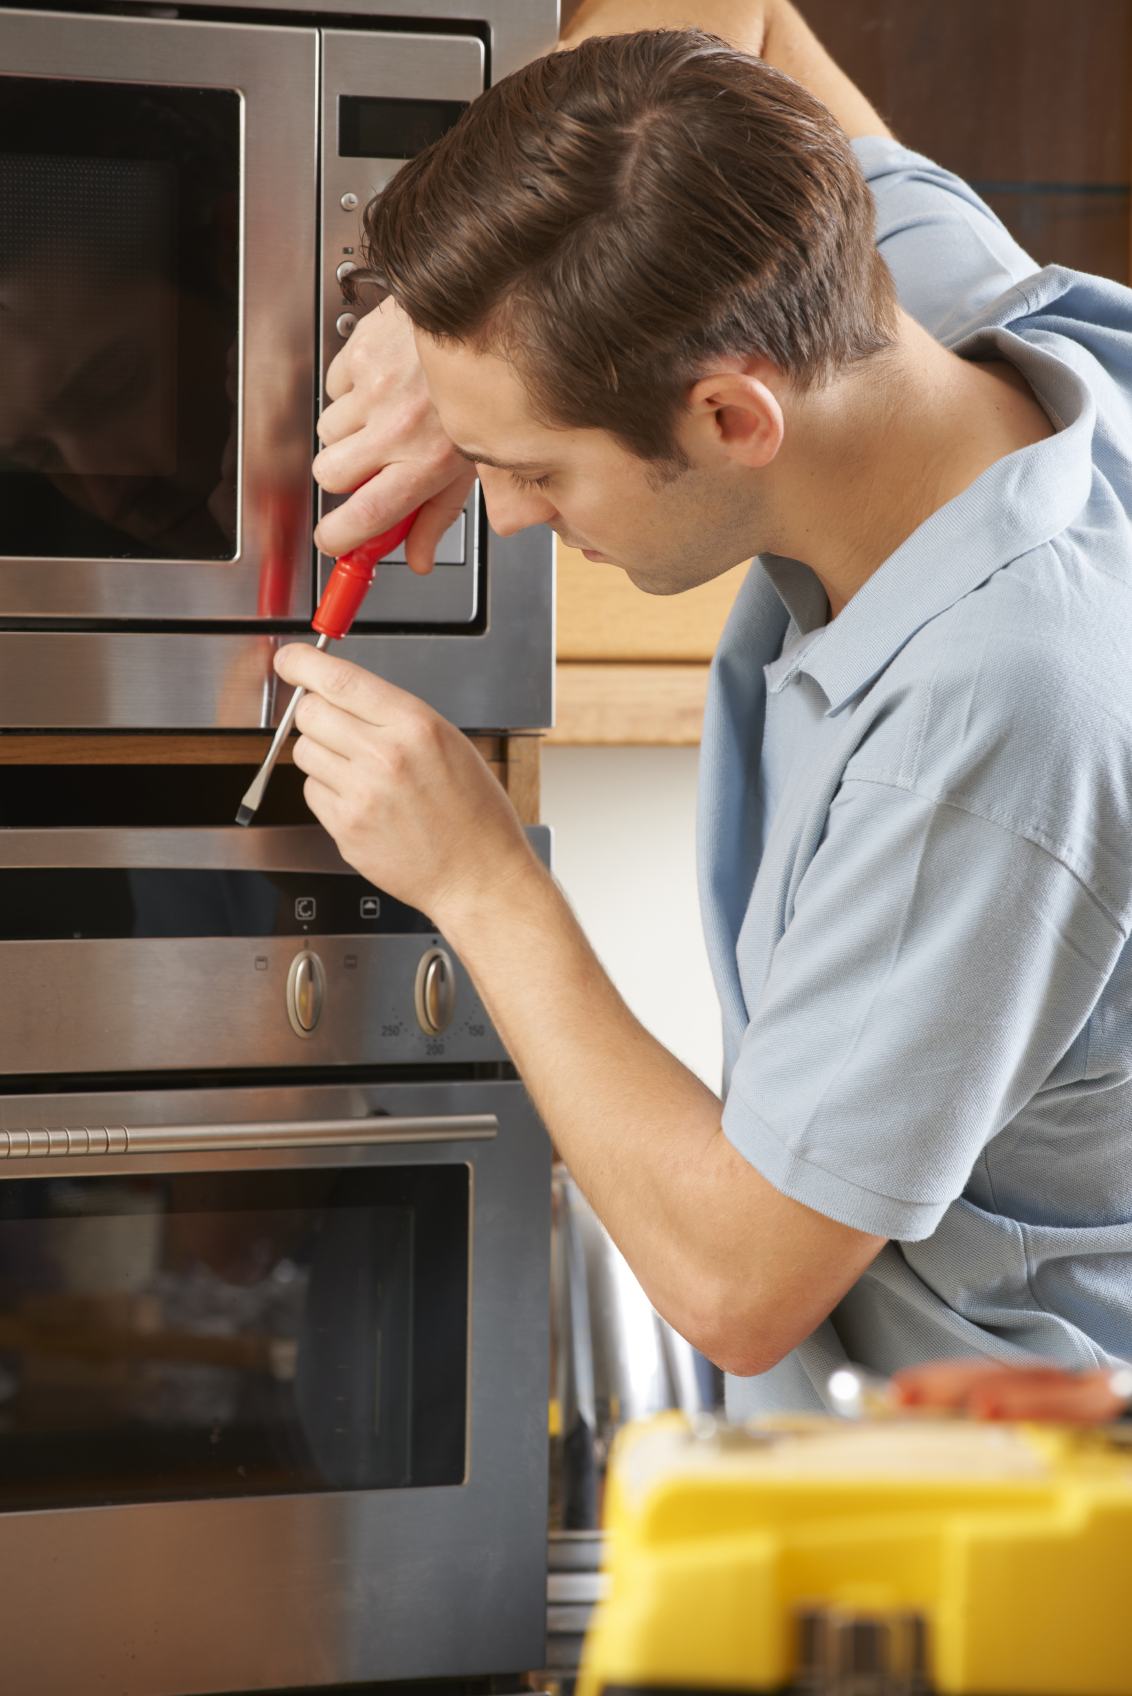 Uncategorized Kitchen Appliances Repair kitchen appliances repair design appliance services include best in staten island